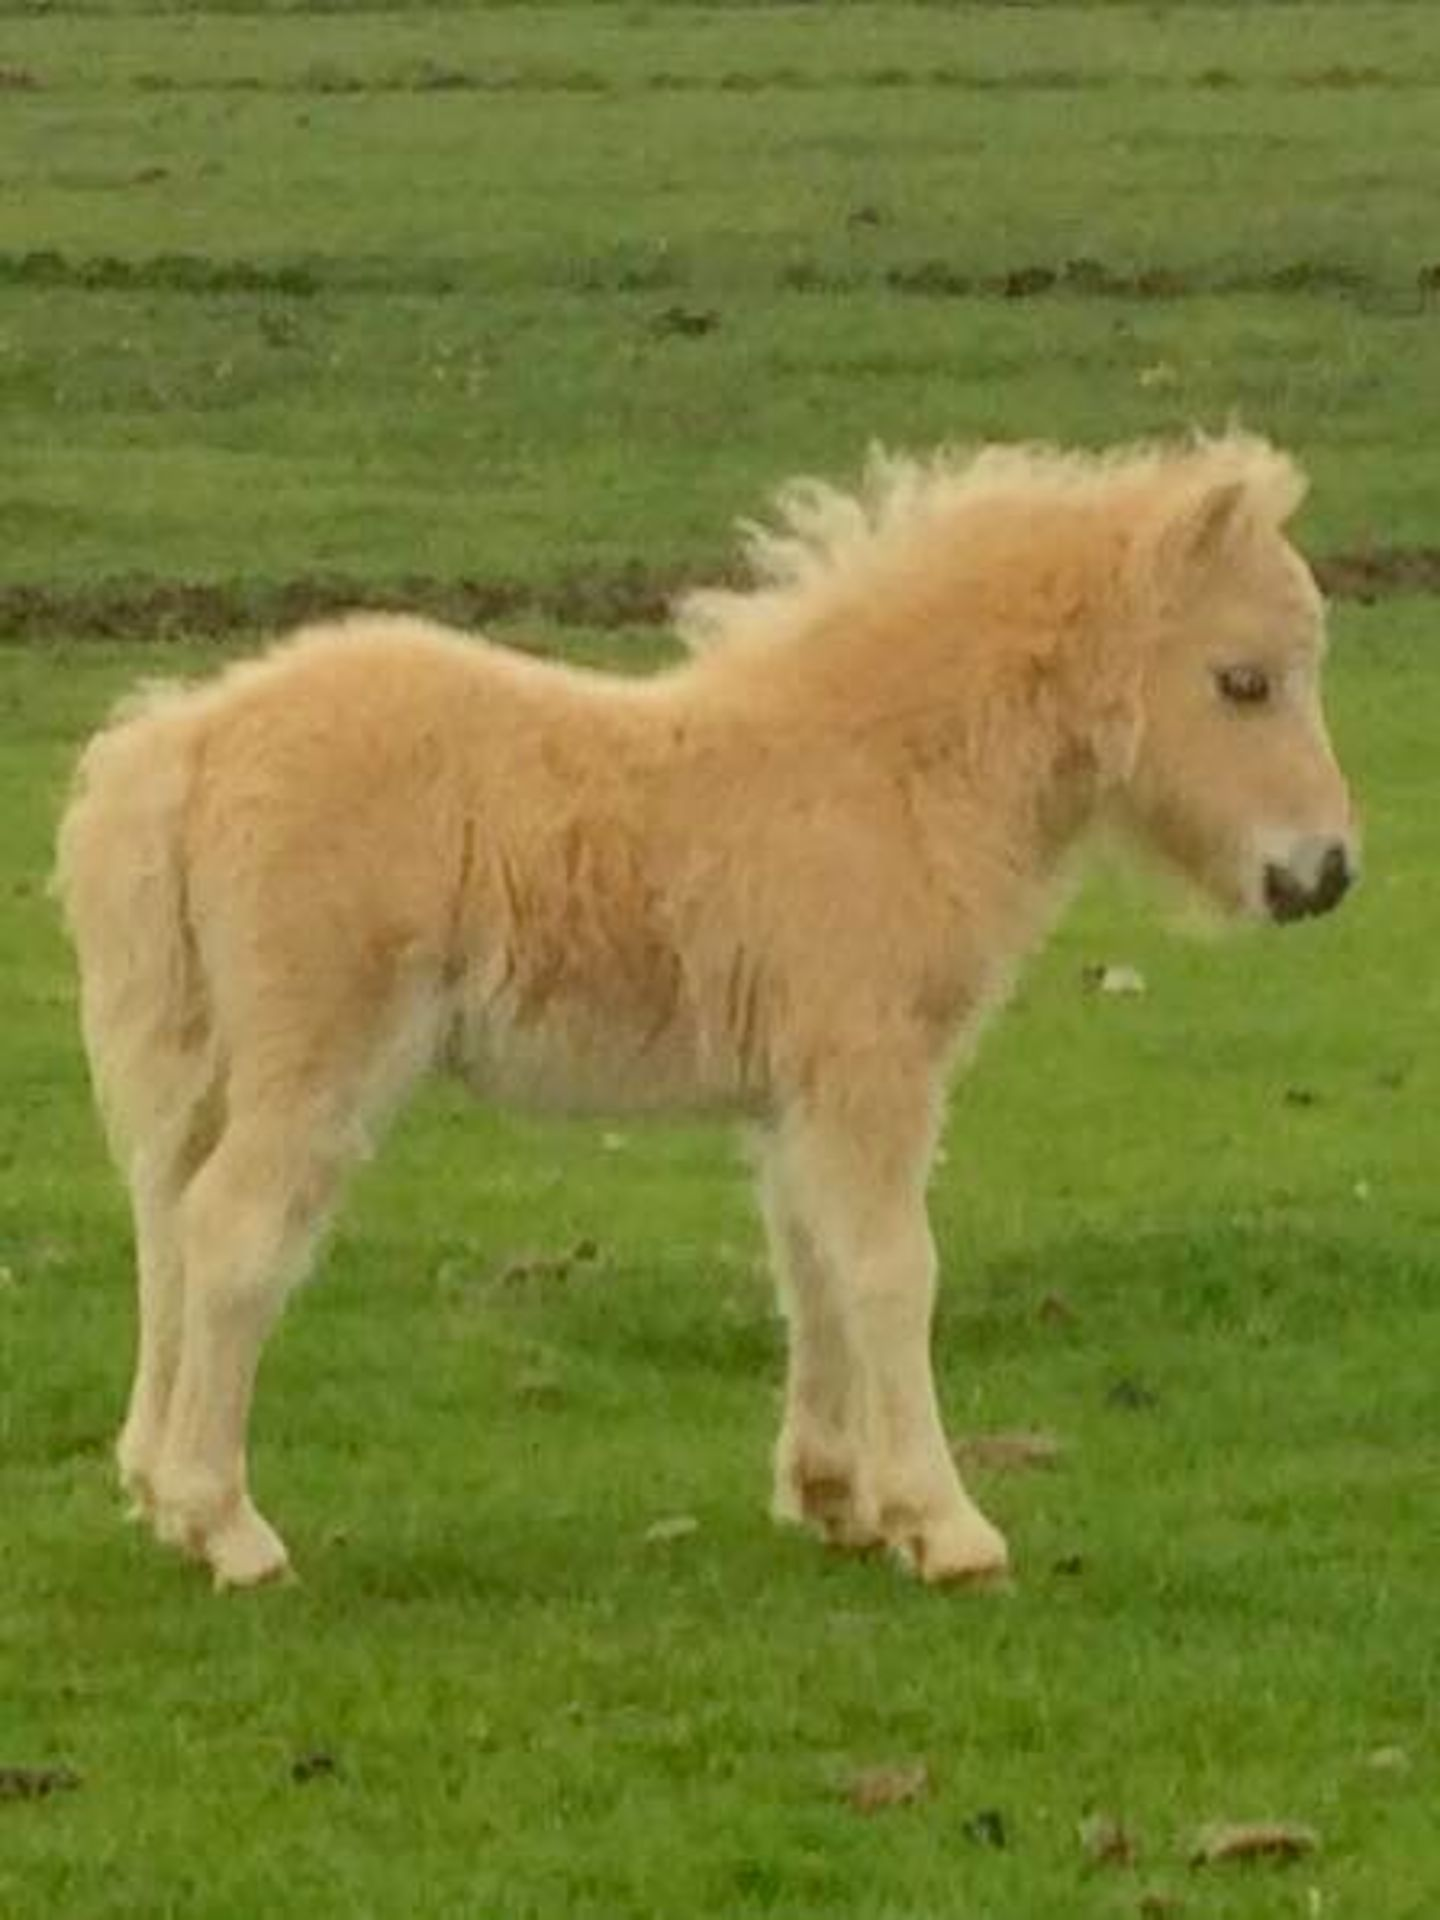 Palomino - Miniature - Filly Foal, - DOB: 11th May 2017 - Image 2 of 7